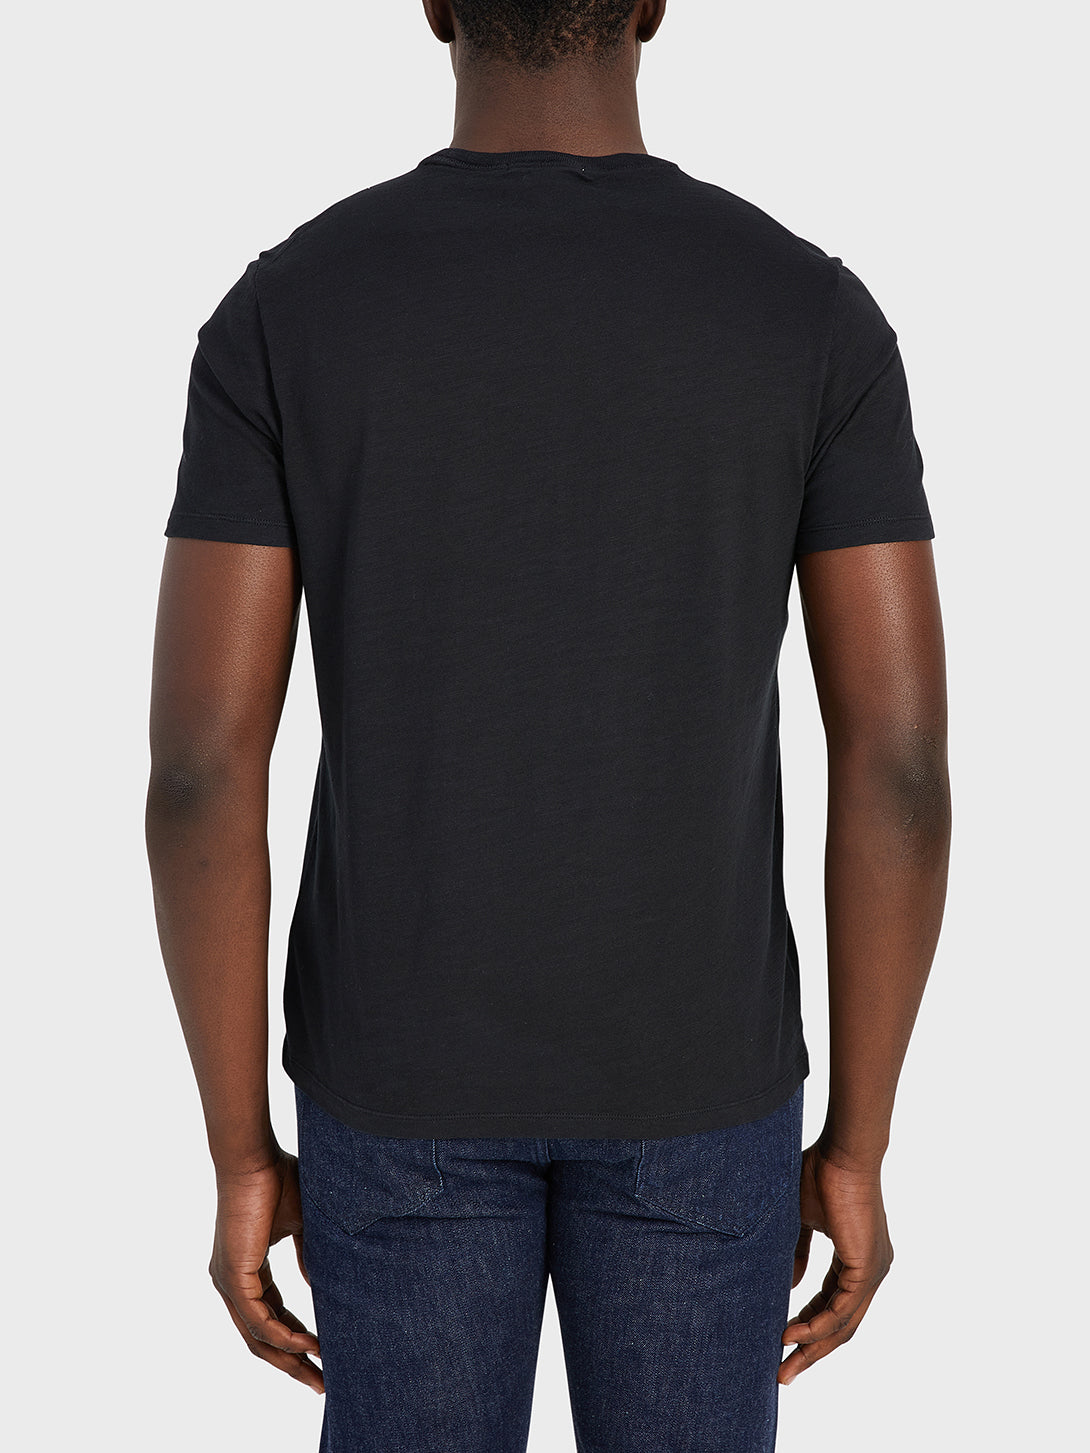 ONS Clothing Men's Bowery Slub Pocket tee in Black